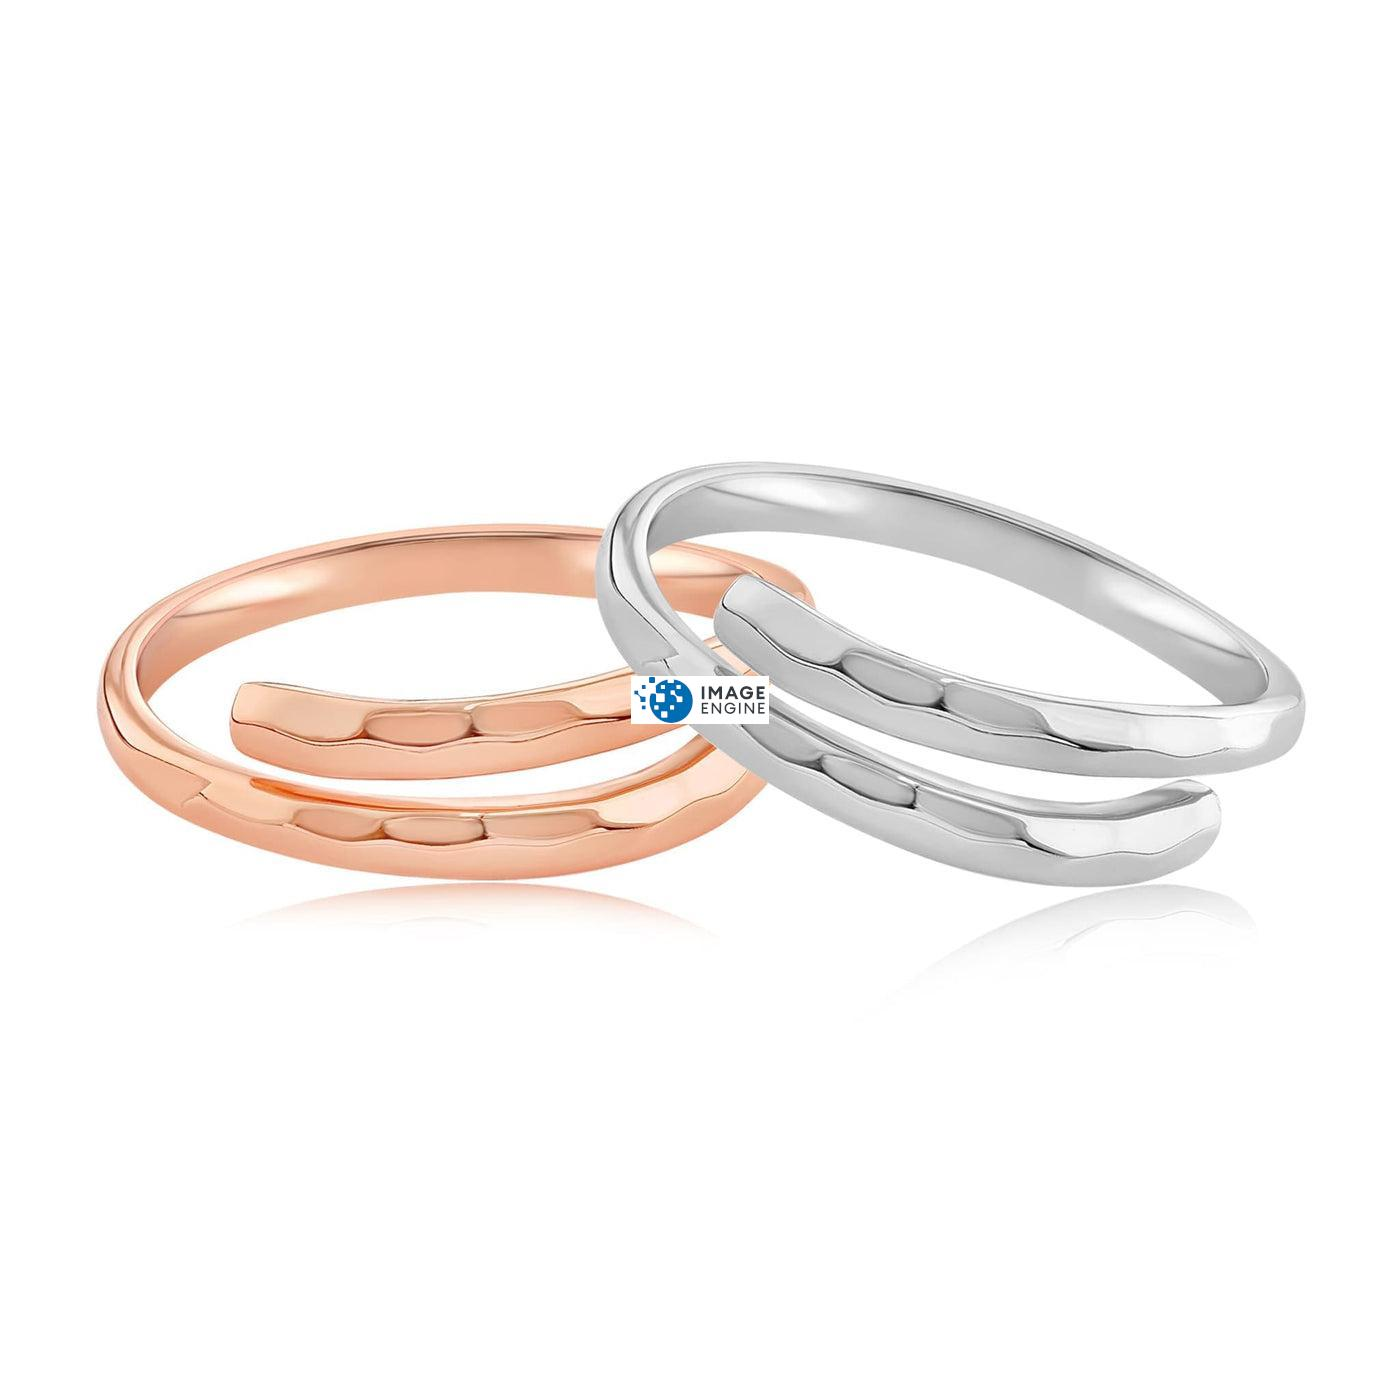 Minimalist Thumb Ring - Front View Side by Side - 18K Rose Gold Vermeil and 925 Sterling Silver